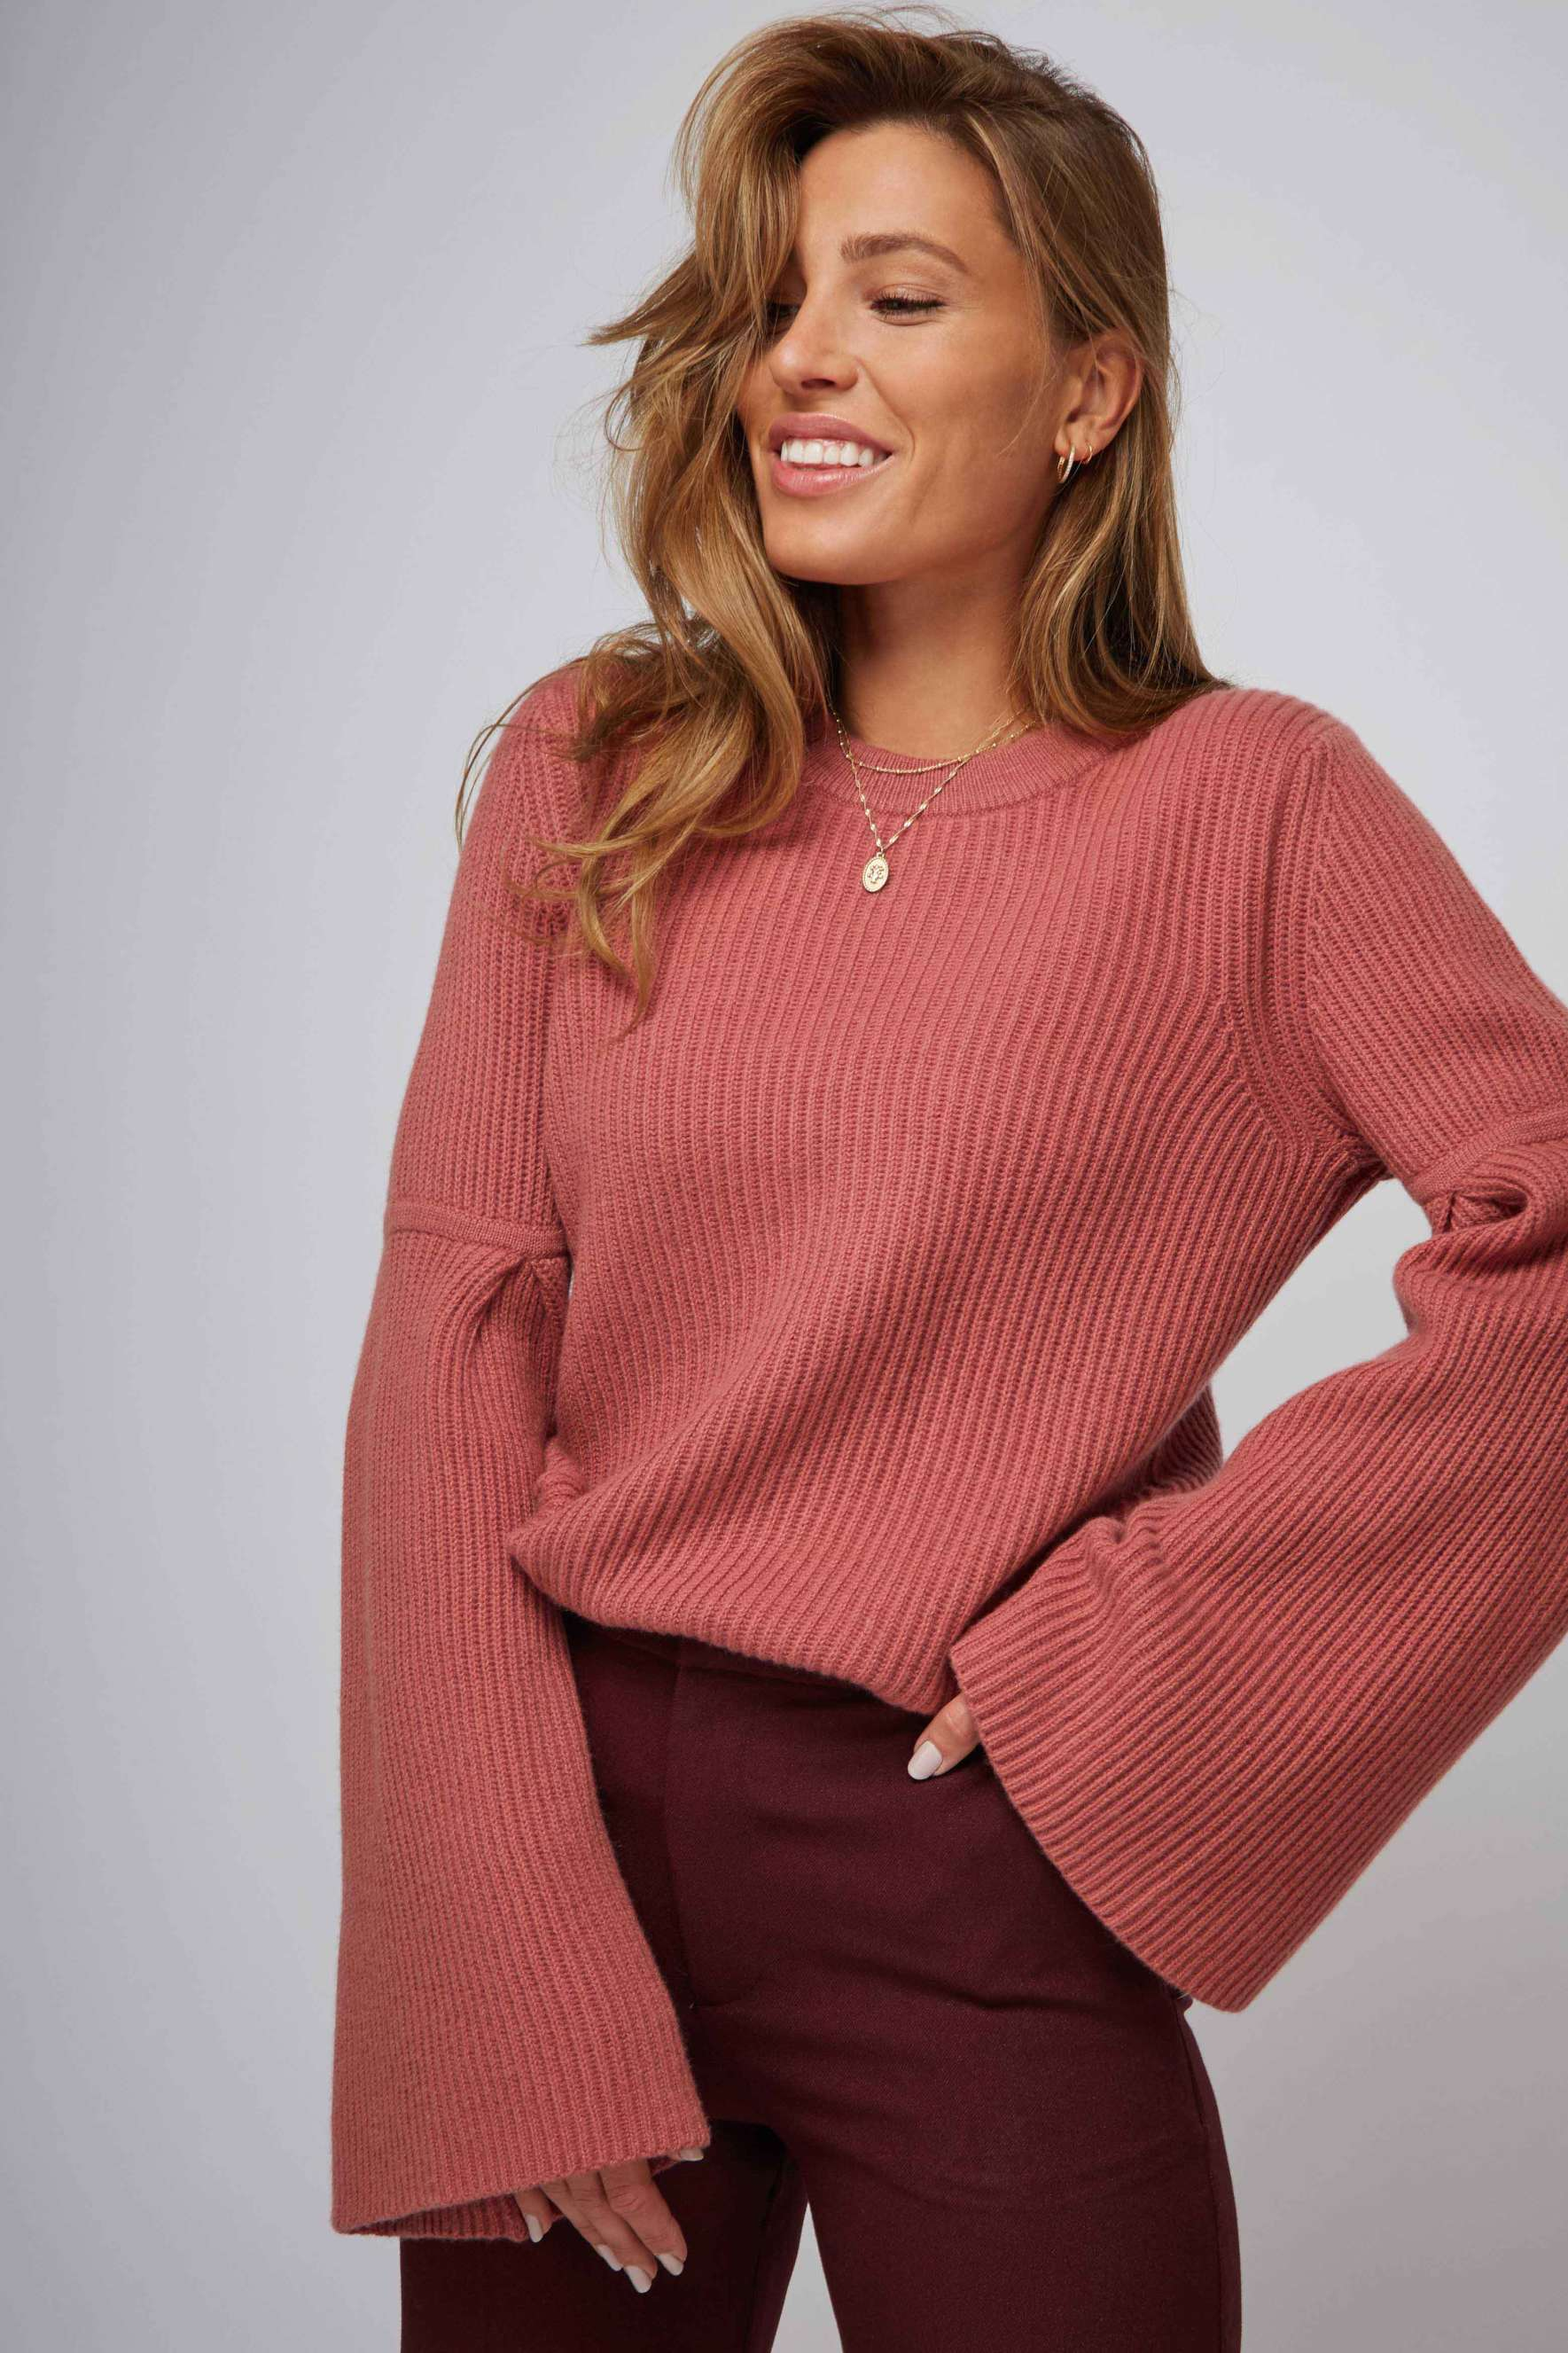 Biderman Flounce Rib Sweater